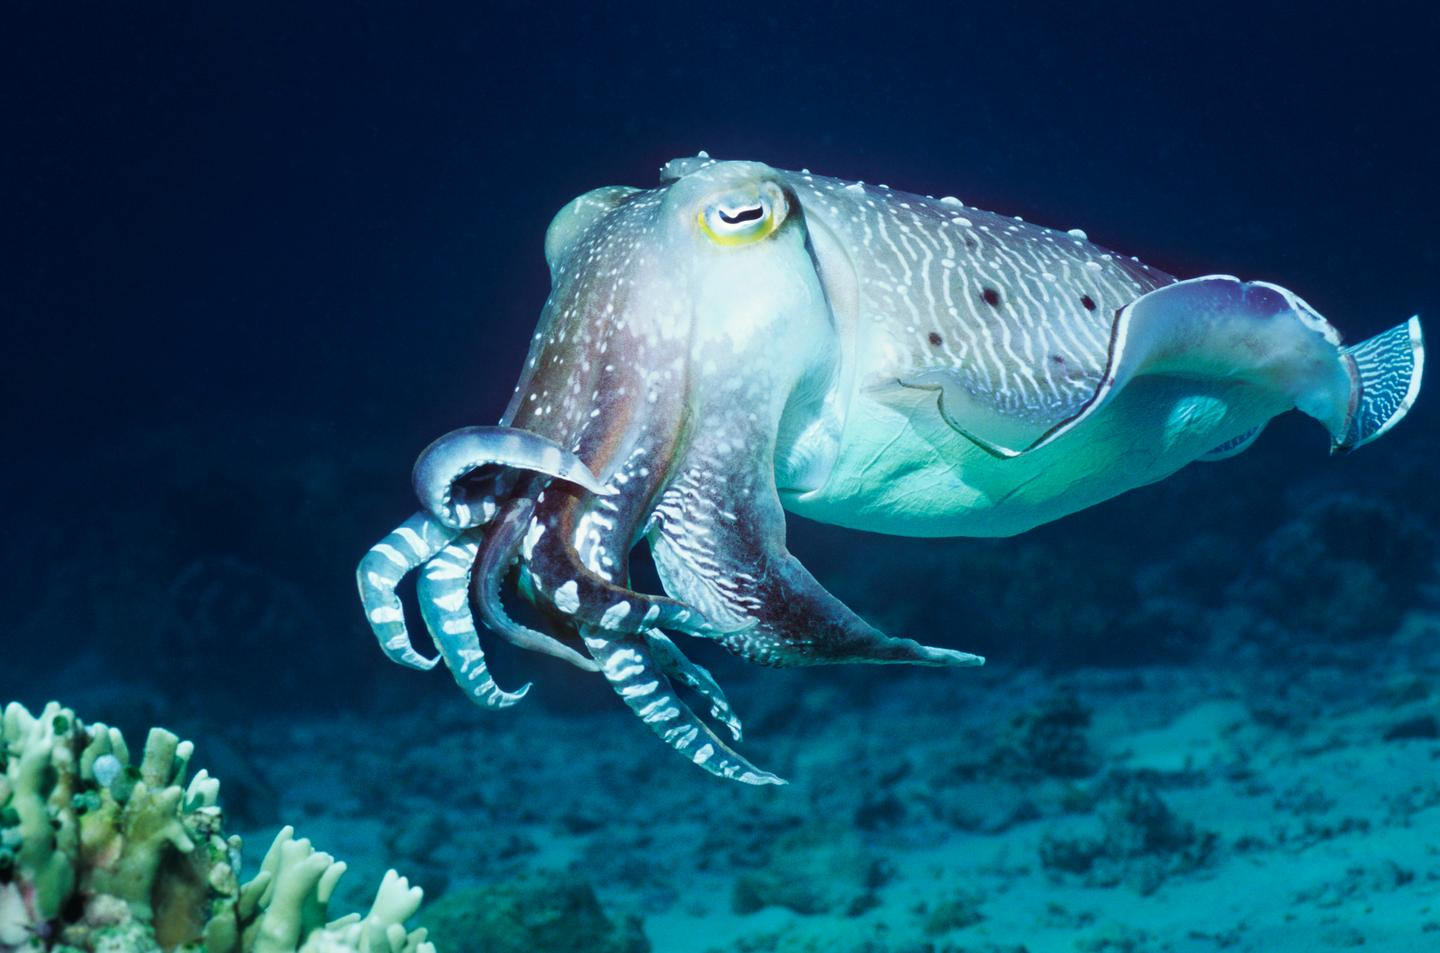 Cuttlefish will eat fewer crabs during the day if they know they're getting shrimp for dinner